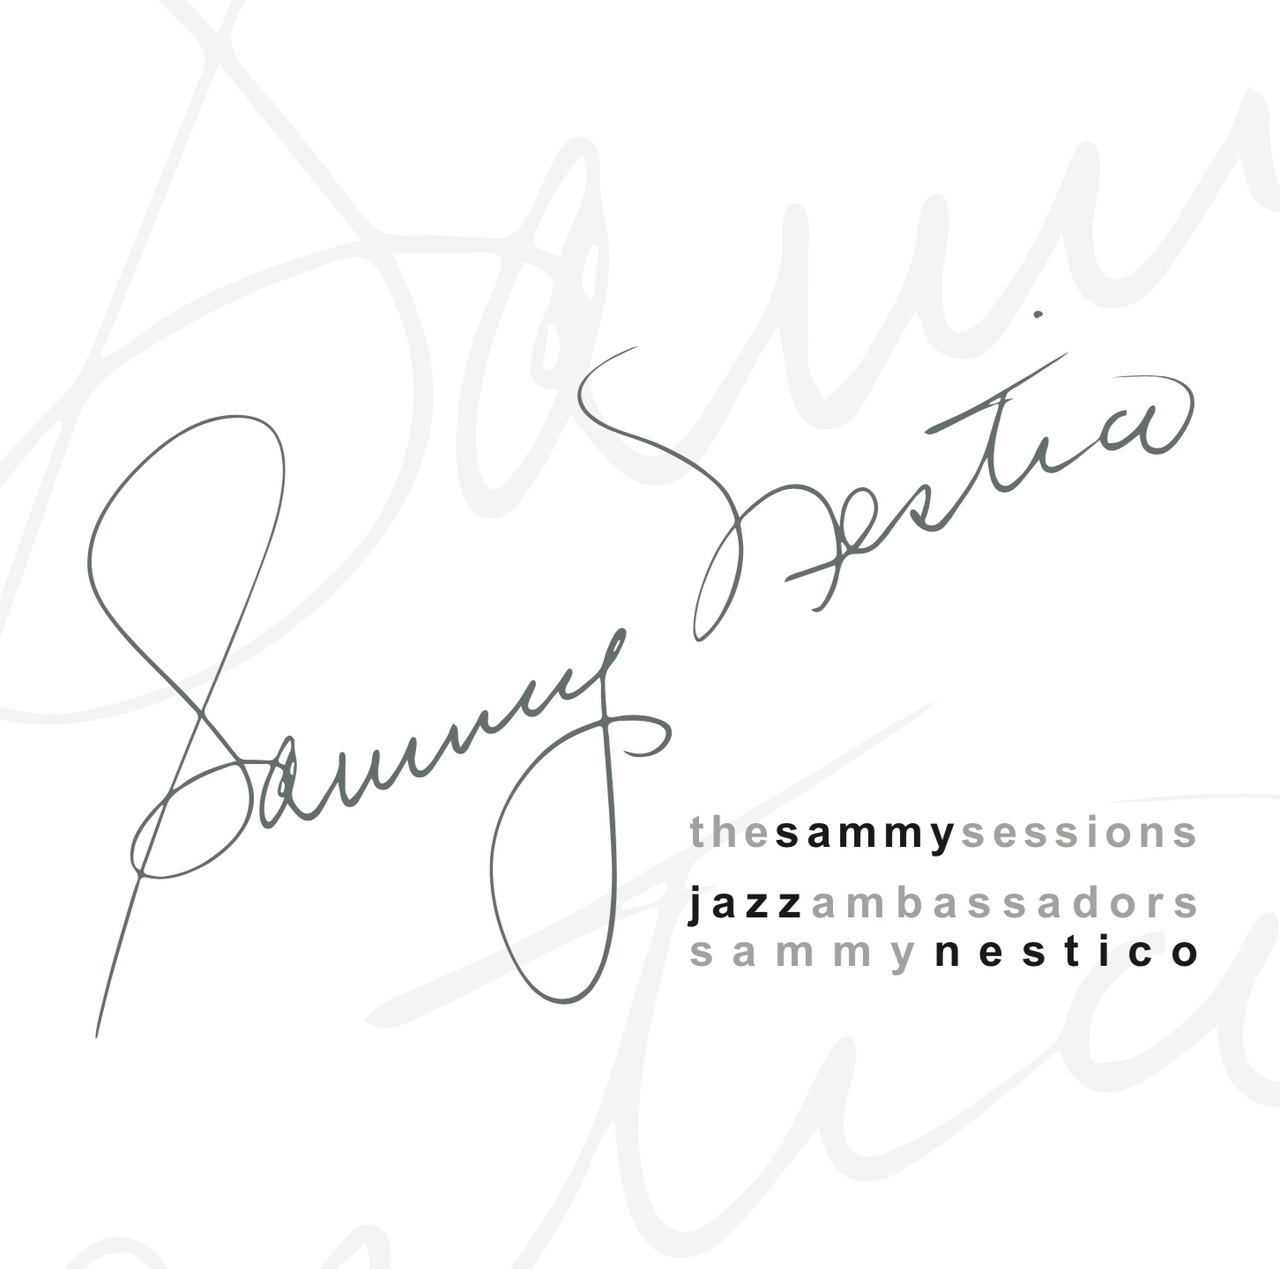 """The Sammy Sessions - BluRay / CDSammy Nestico  $360 - $30 monthly Recurring gift, $360 one-time giftPittsburgh Native, Basie and Quincy Jones Collaborator Sammy Nestico with a brand new, CD, Blu-Ray audio, video and collector's release.Big Band composer and Arranger Sammy Nestico in a brand new project with the US Army Jazz Ambassadors """"America's Big Band,"""", as recorded by Grammy winning producer (and Pittsburgh Native) Jim Anderson.""""The Sammy Sessions"""" can be heard in stereo, on CD, and on a Pure Audio Blu-Ray disc with immersive audio formats including 5.1 surround and 3D Binaural sound. The Blu-Ray disc also includes an extended video of Sammy Nestico discussing his arrangements and compositions and the recording sessions.It swings like mad, too!A portion of the proceeds from sales of """"The Sammy Sessions"""" will be sent to the Gary Sinise Foundation https://www.garysinisefoundation.orgFMV $42"""